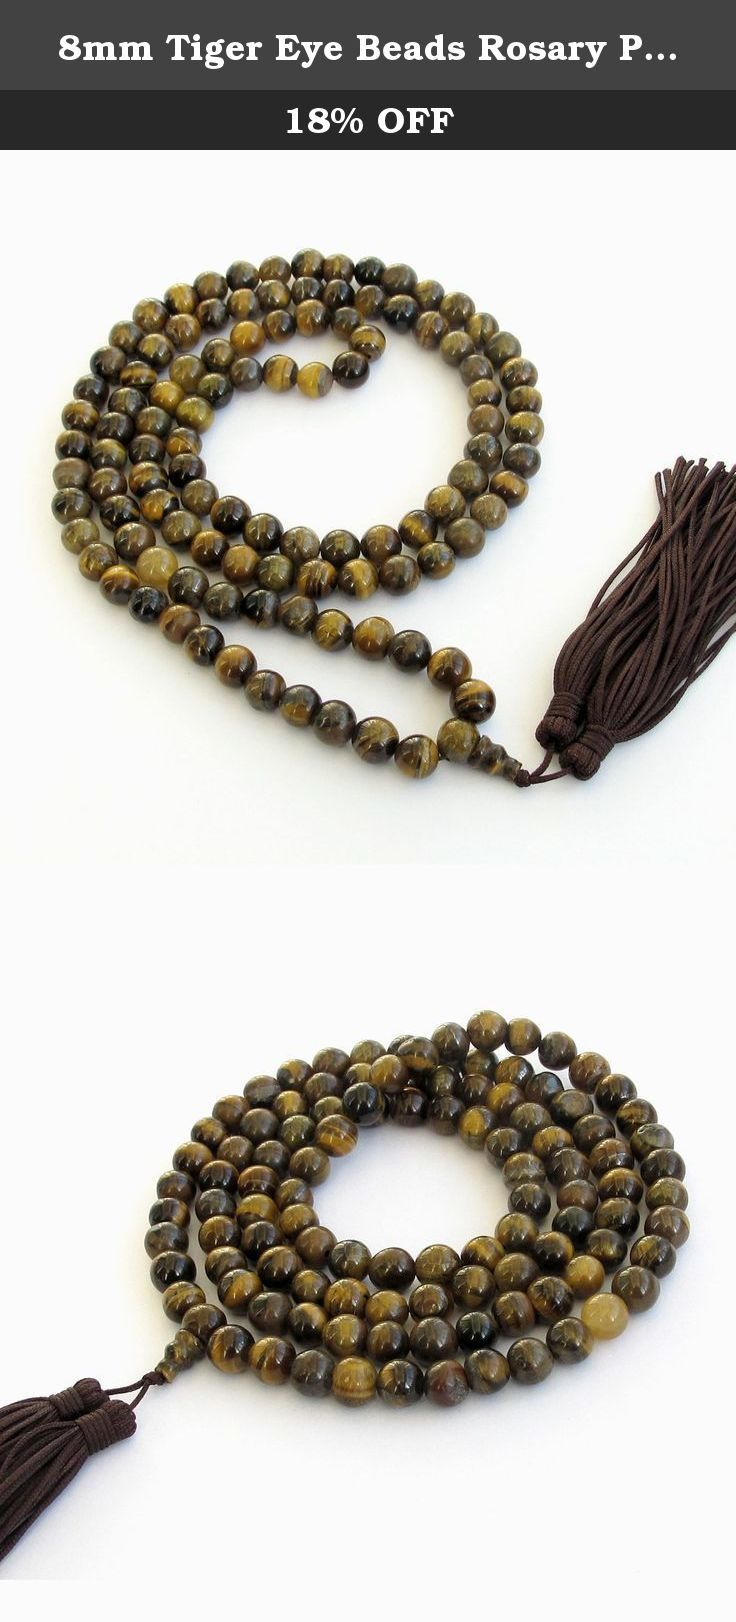 8mm Tiger Eye Beads Rosary Prayer Meditation 108 Japa Mala Necklace. This mala made of 108 8mm tiger eye beads. Each beads were handpicked by us and strung on a quality string. It is good meditation and counting practice.